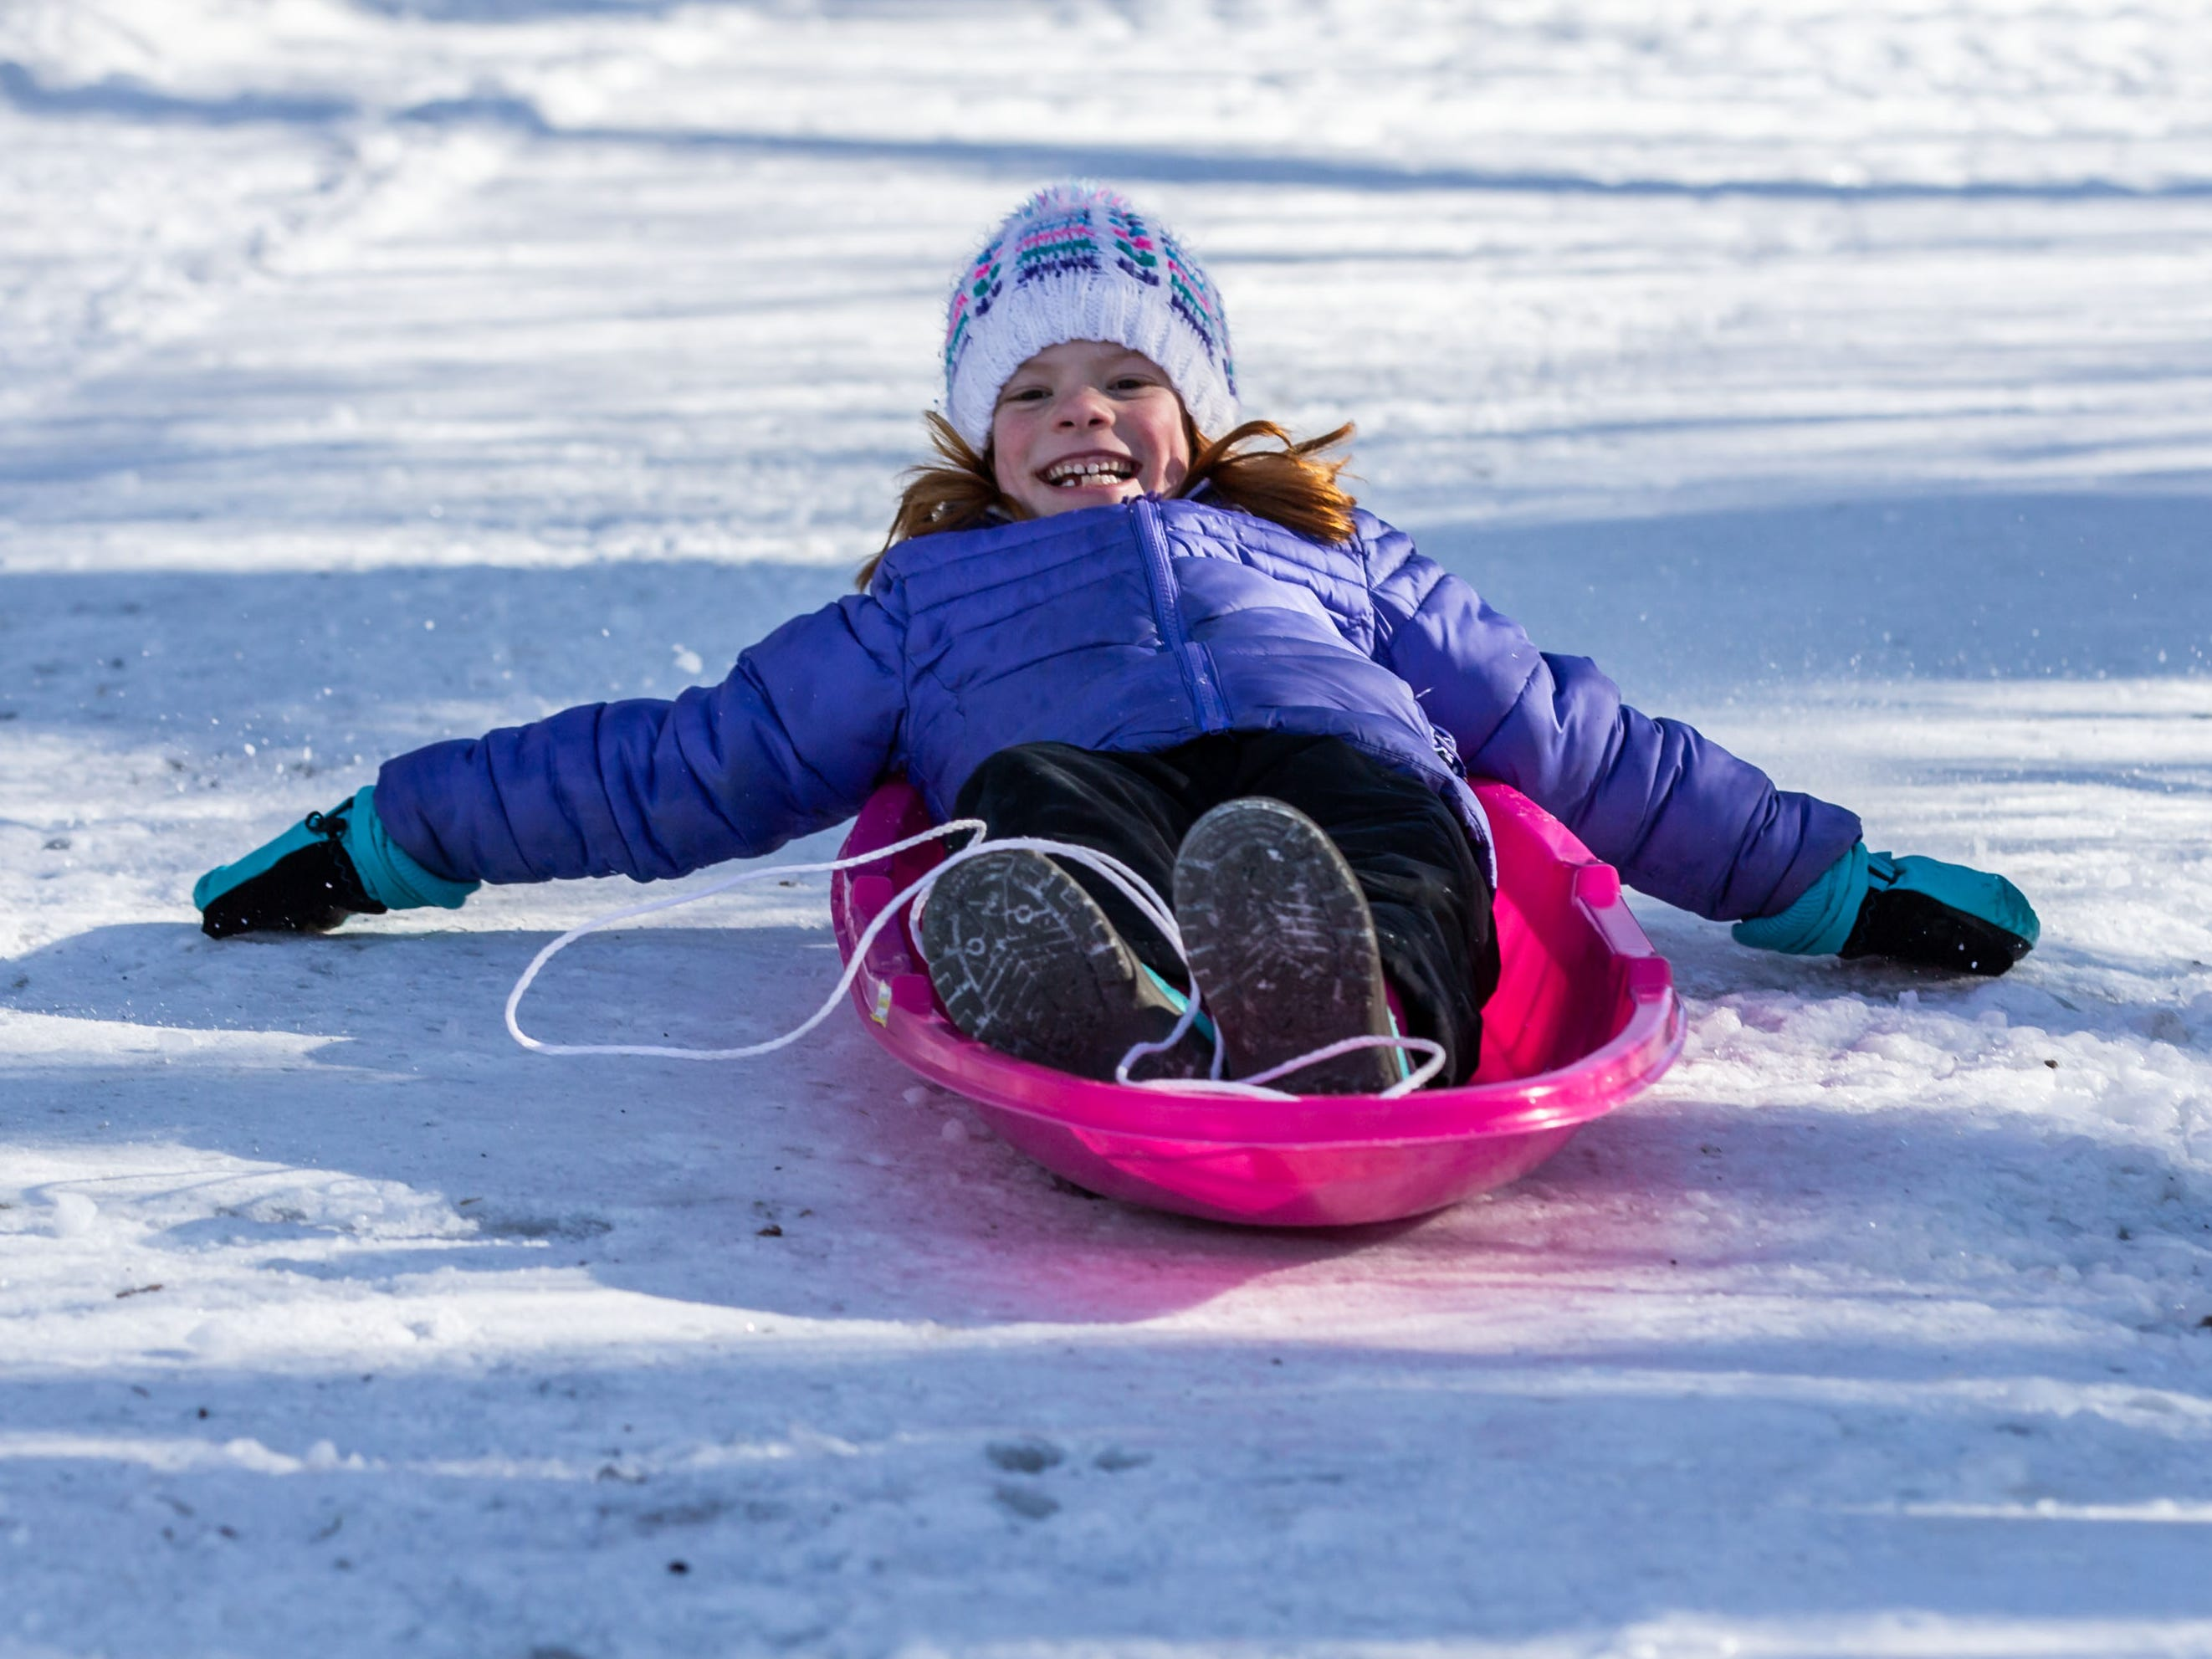 Elsie Ludwig, 7, of Oconomowoc speeds down the sledding hill during the annual Winterfest at Lisbon Community Park on Saturday, Feb. 9, 2019. The free event includes ice skating, sledding, skiing, a bonfire, a warming tent with free refreshments, hot dogs and s'mores.